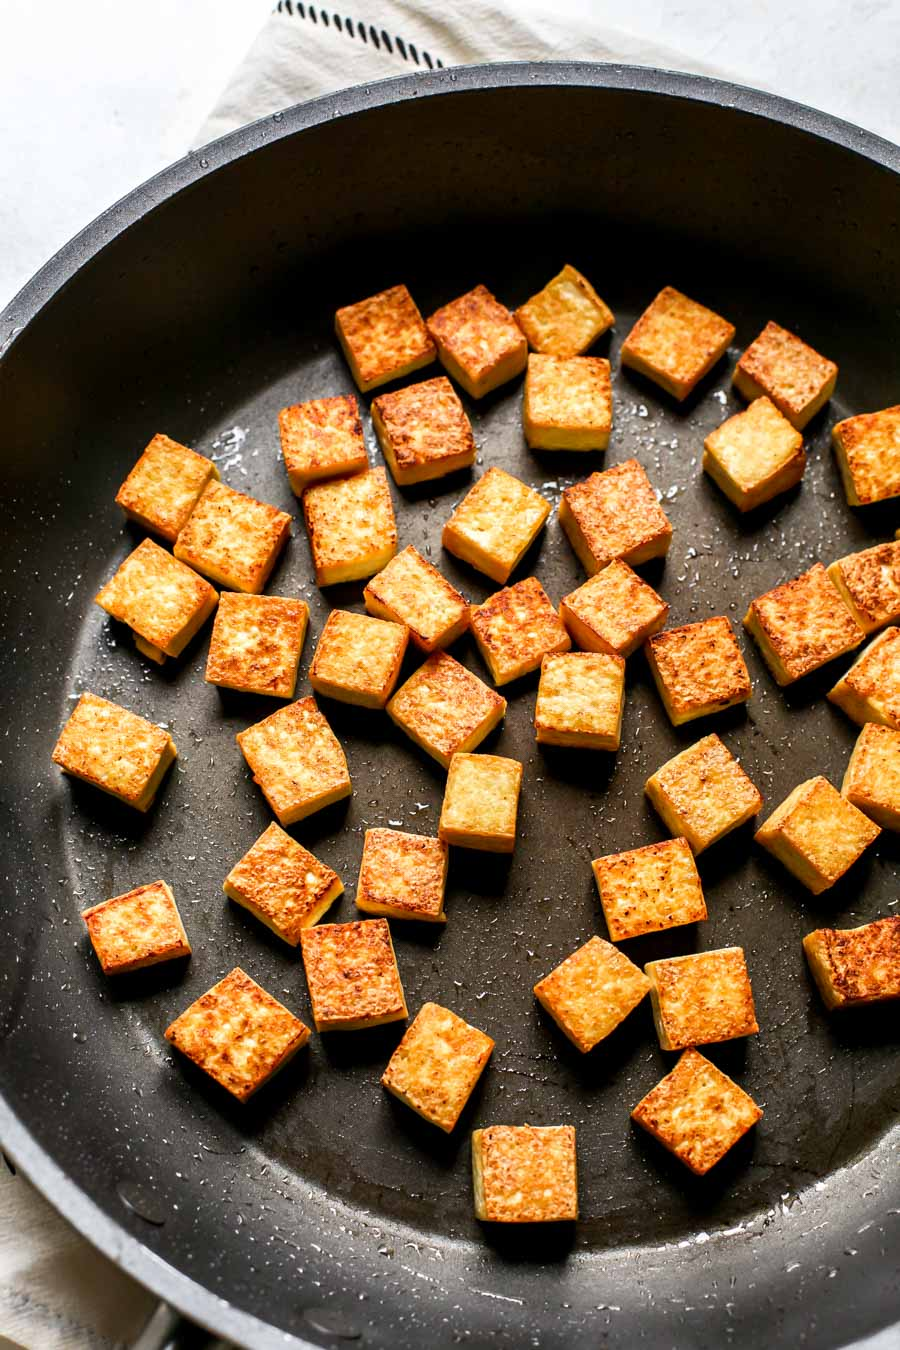 How to Cook Crispy Tofu in a Skillet